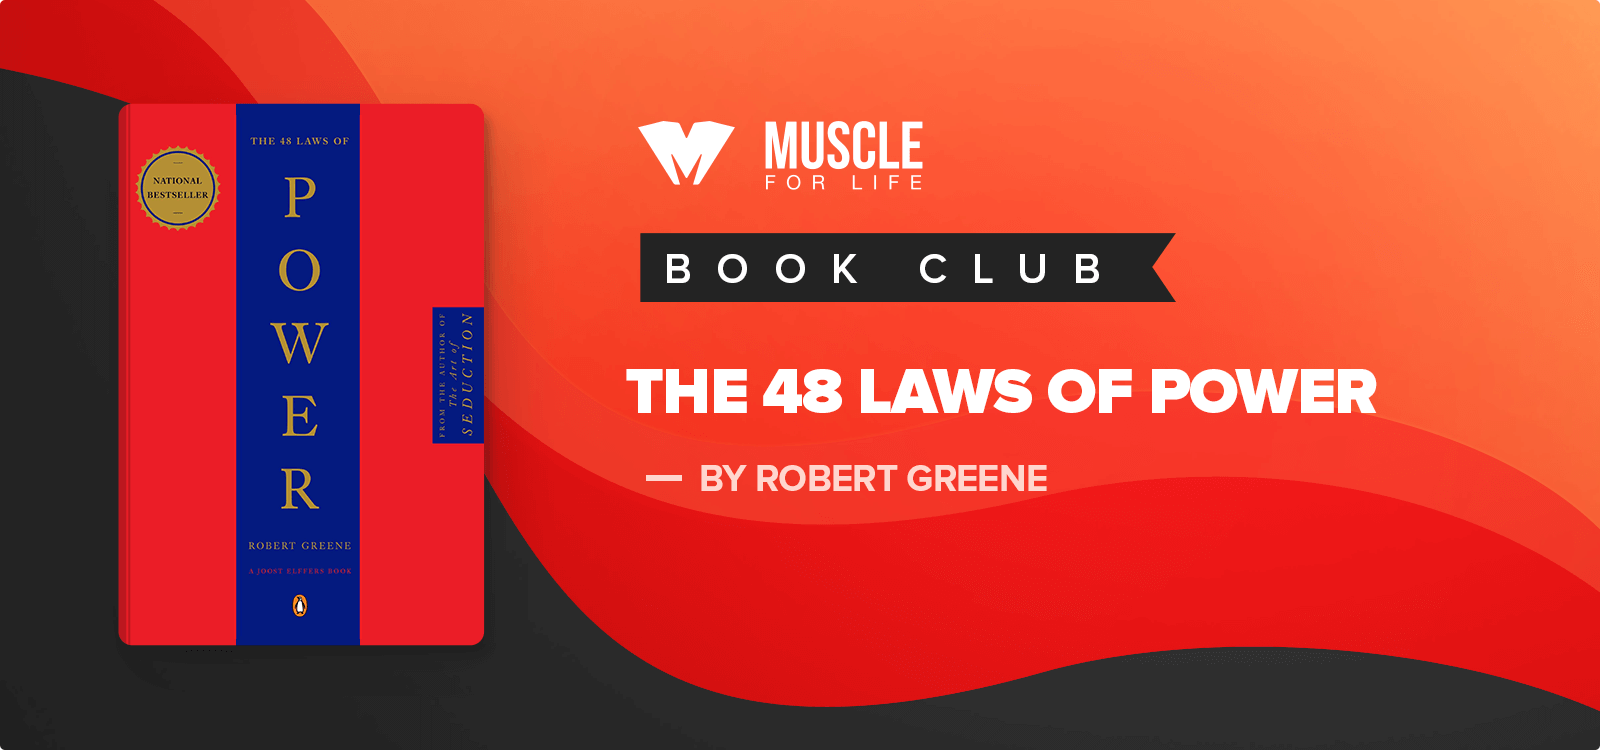 My Top 5 Takeaways from The 48 Laws of Power by Robert Greene